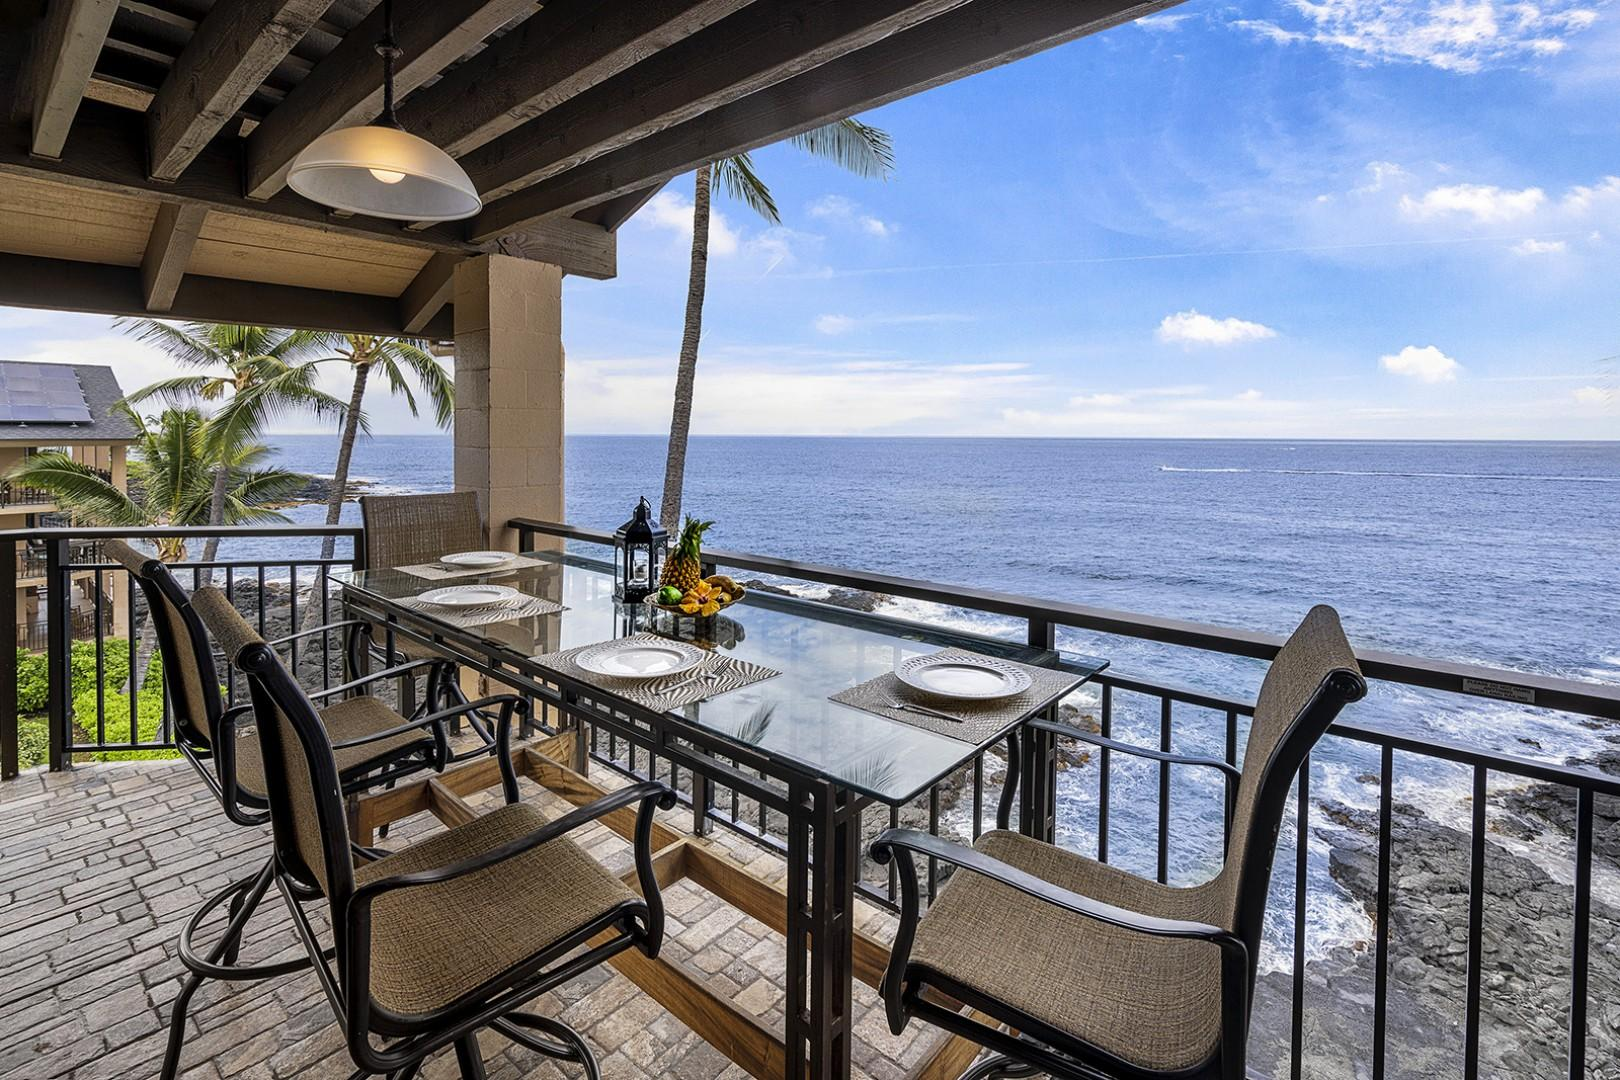 Wrap around Lanai means views as far as the eye can see!